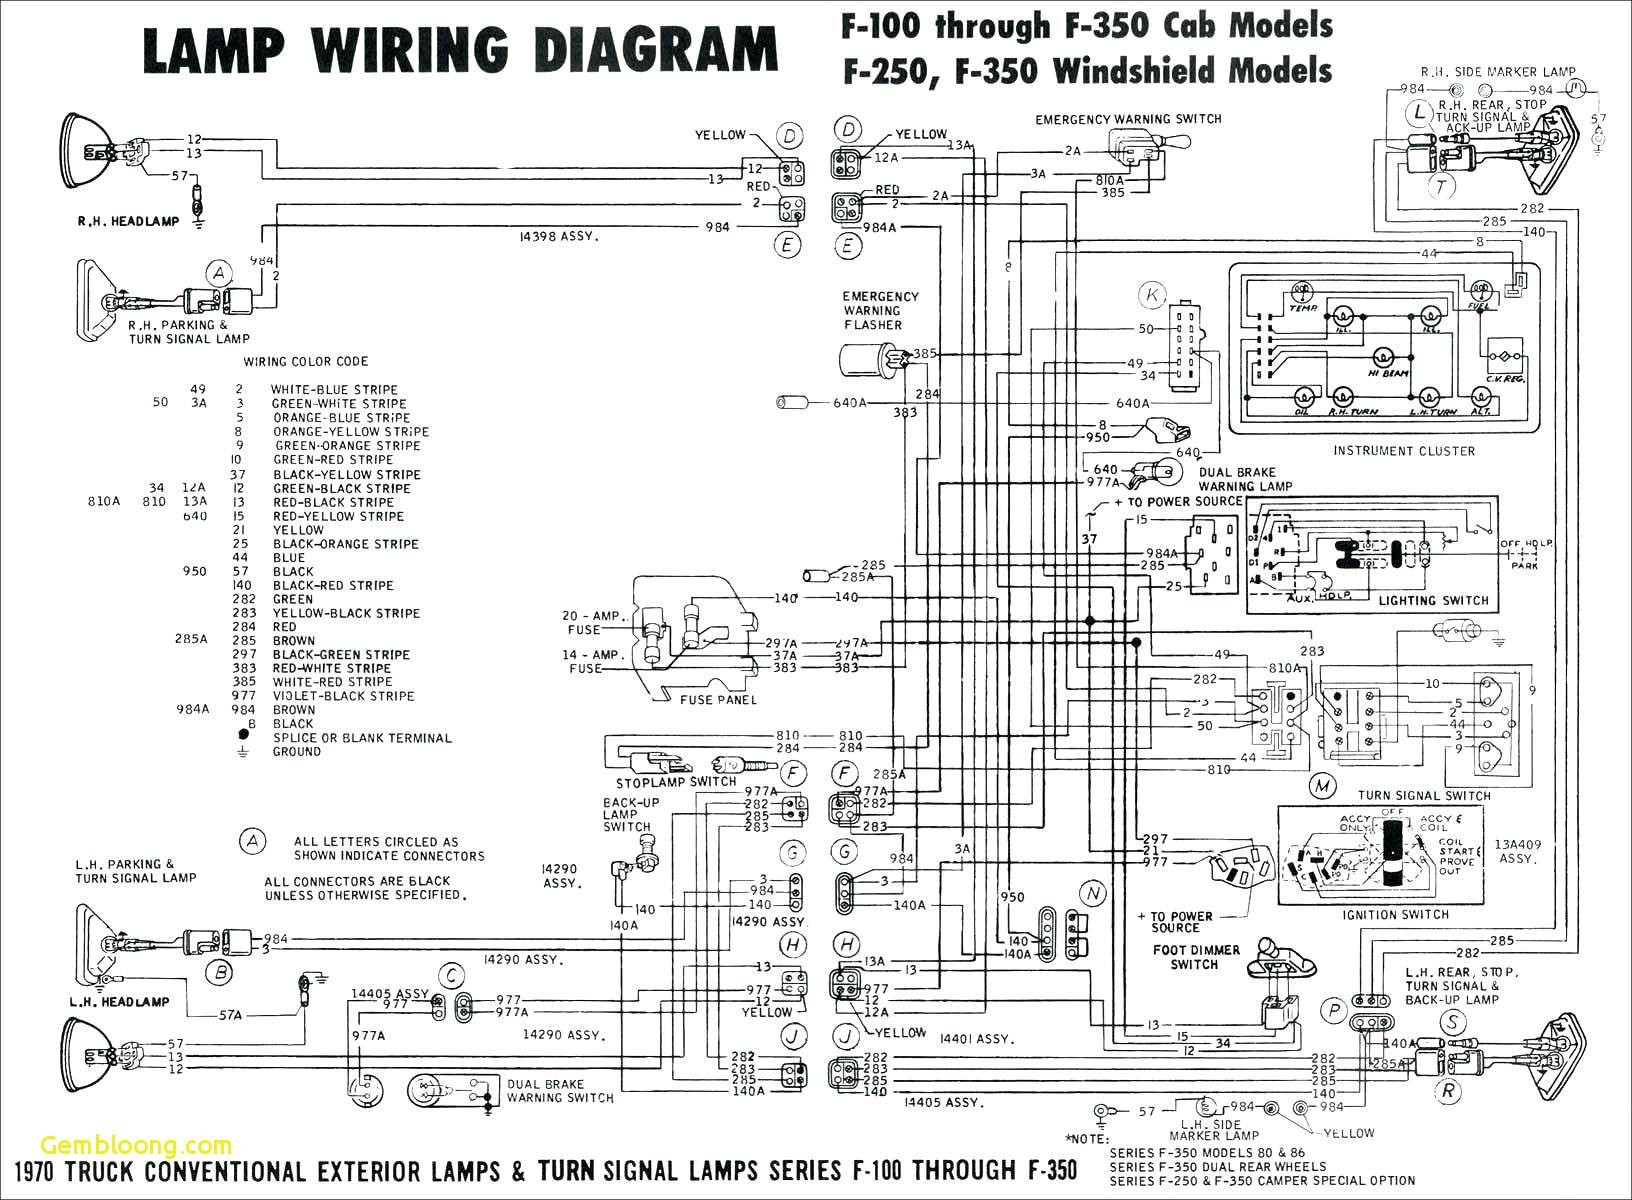 Diagram Of Car Wiring House Wiring Diagram App Best Wiring Diagram Of Diagram Of Car Wiring Big 3 Upgrade Wiring Diagram Lovely Big Car Audio Wiring Diagram 8